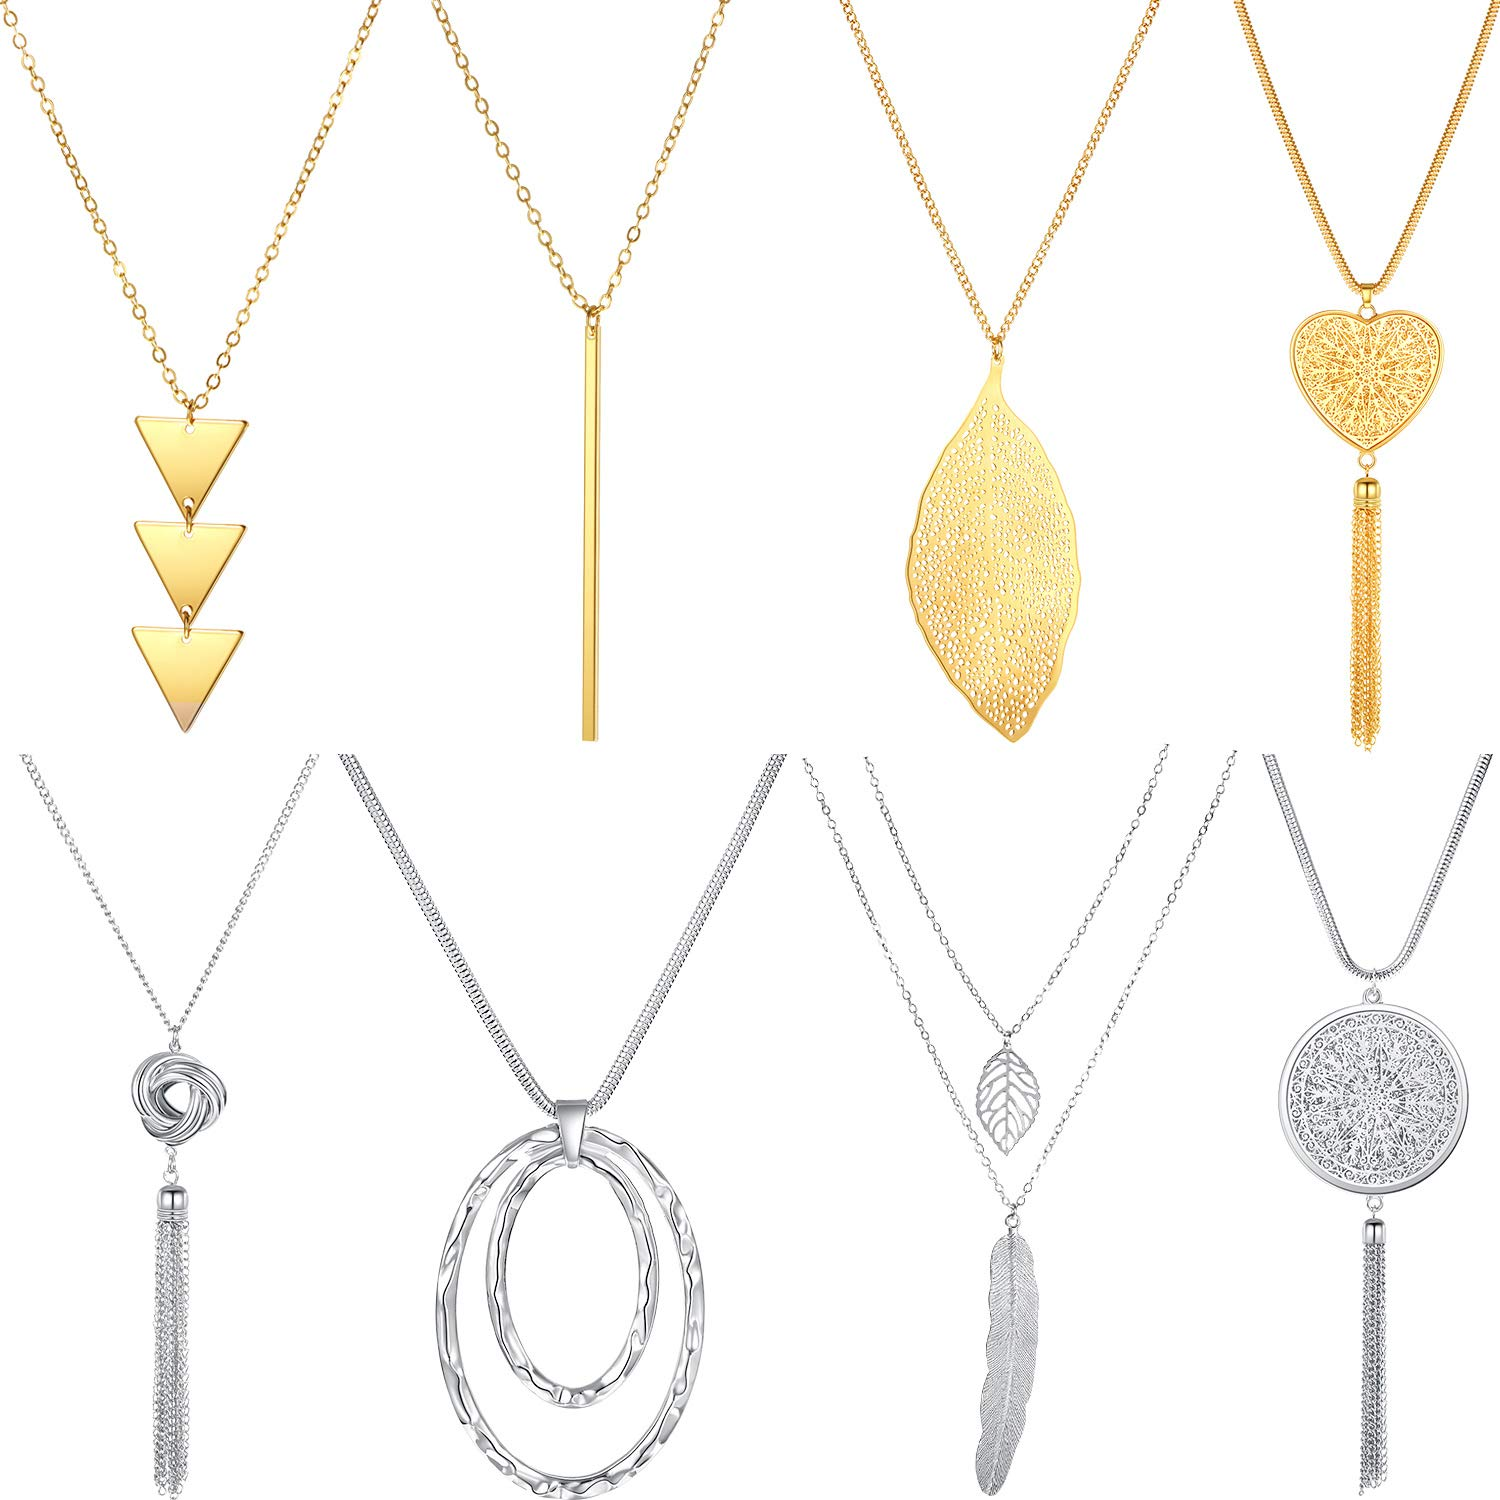 8 Pieces Long Pendant Necklace Simple Y Shape Necklace Metal Geometric Sweater Necklace Jewelry for Women Girls Wearing, Gold and Silver by Hicarer